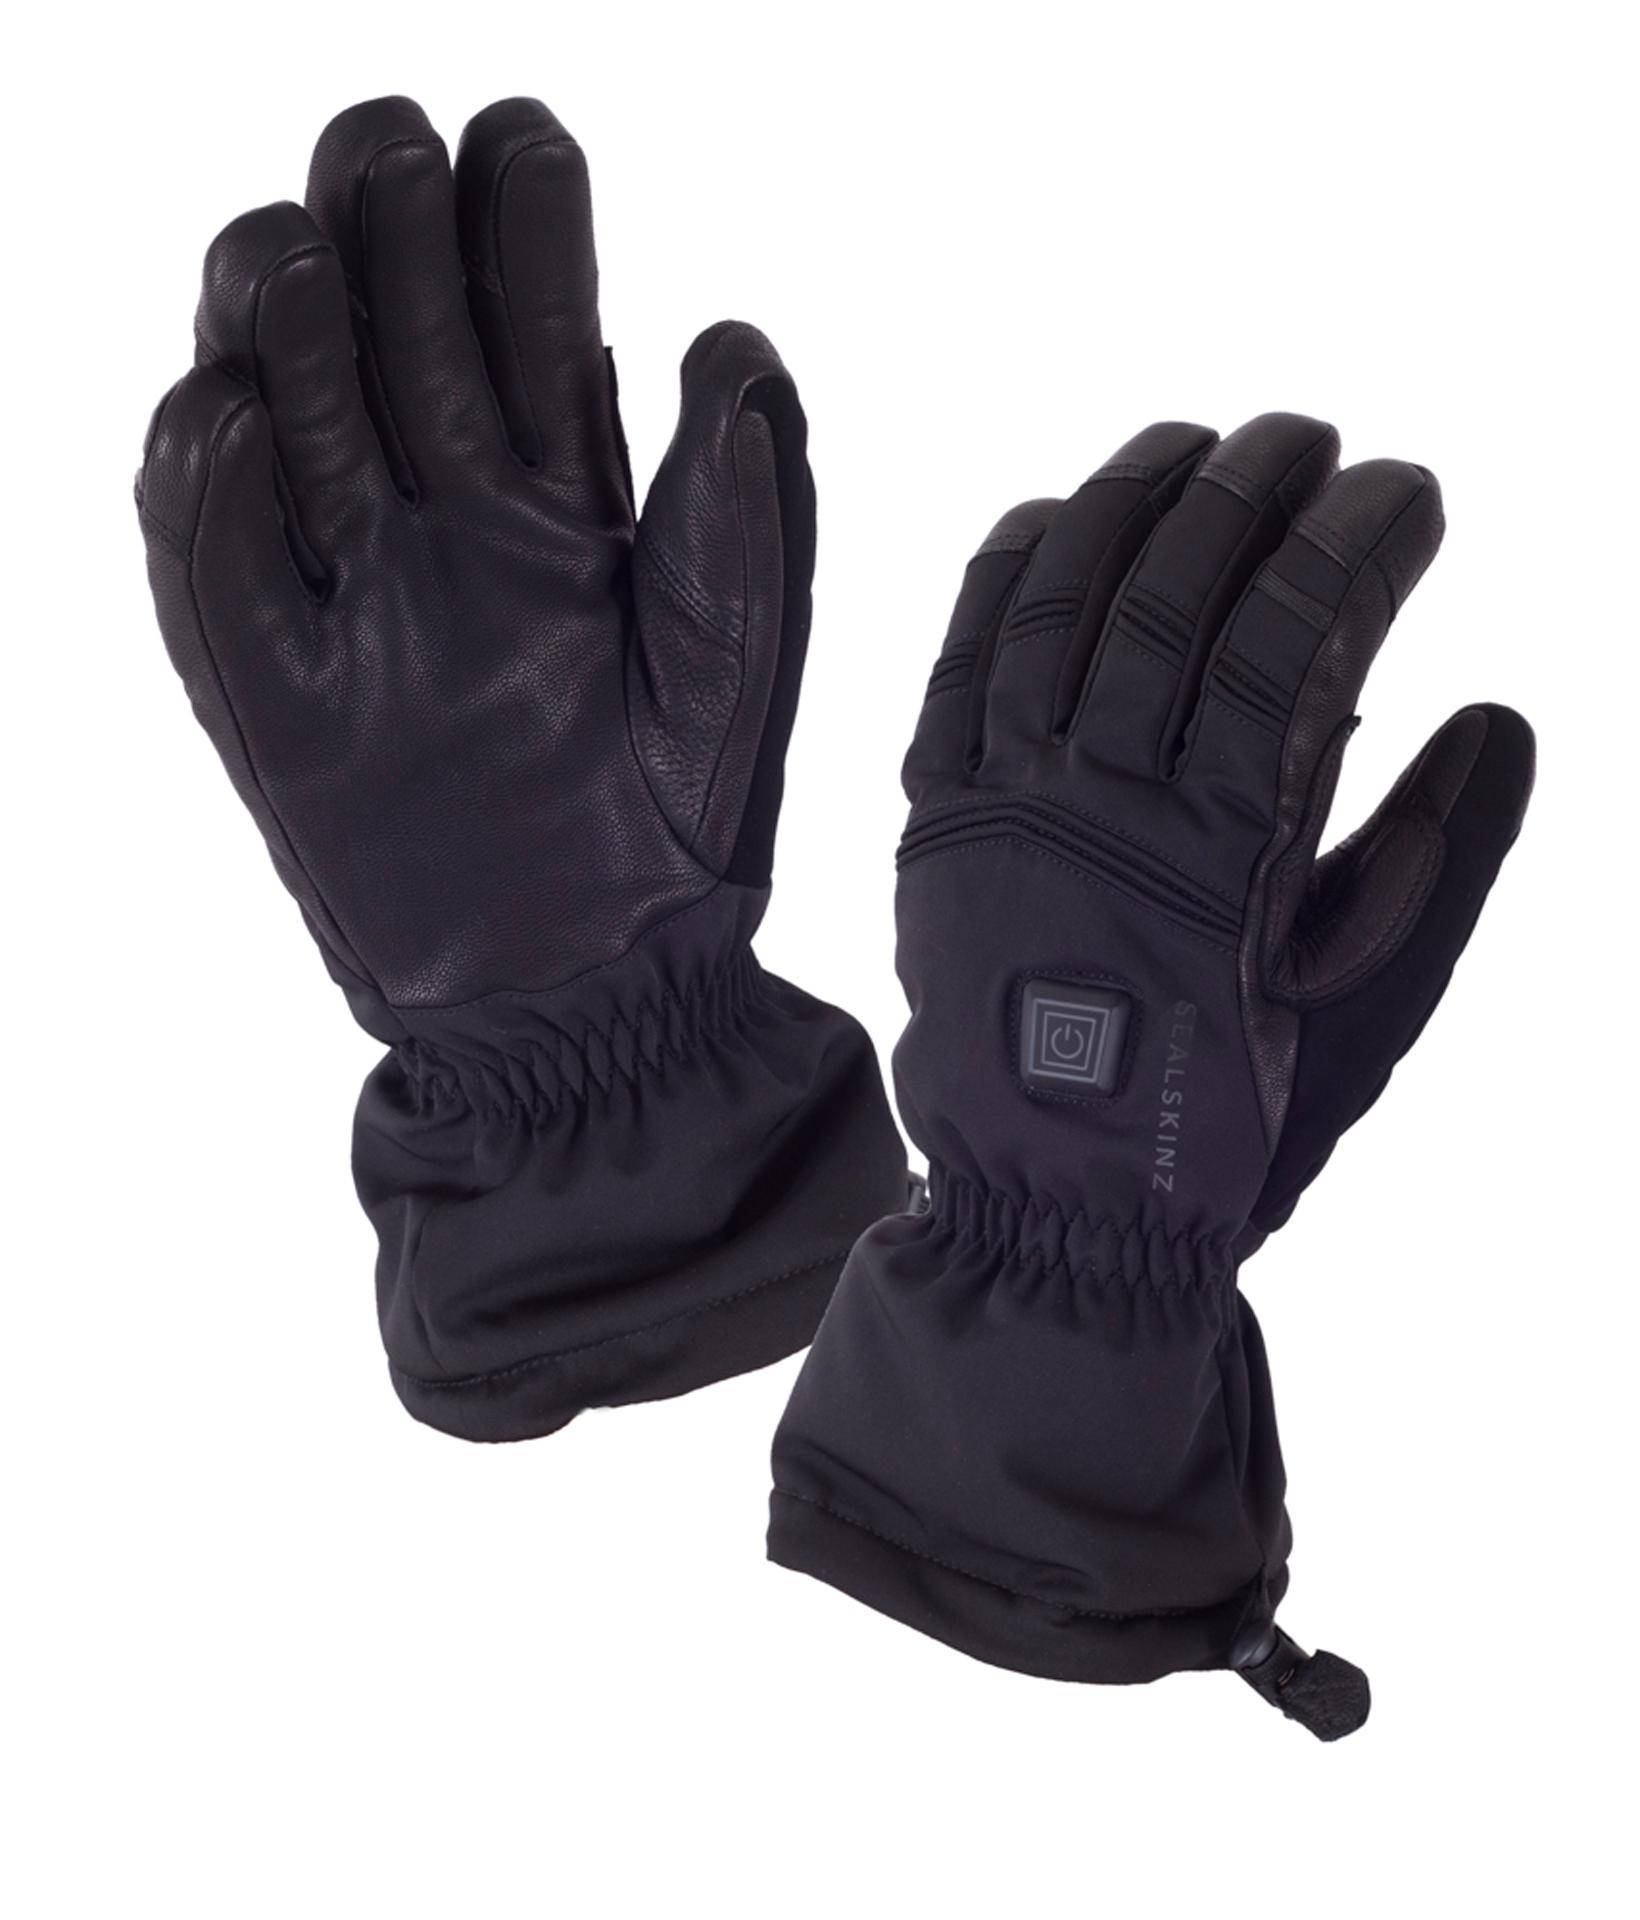 Sealskinz Fietshandschoenen Zwart  / SS Extreme Cold Weather Glove Heated-Black